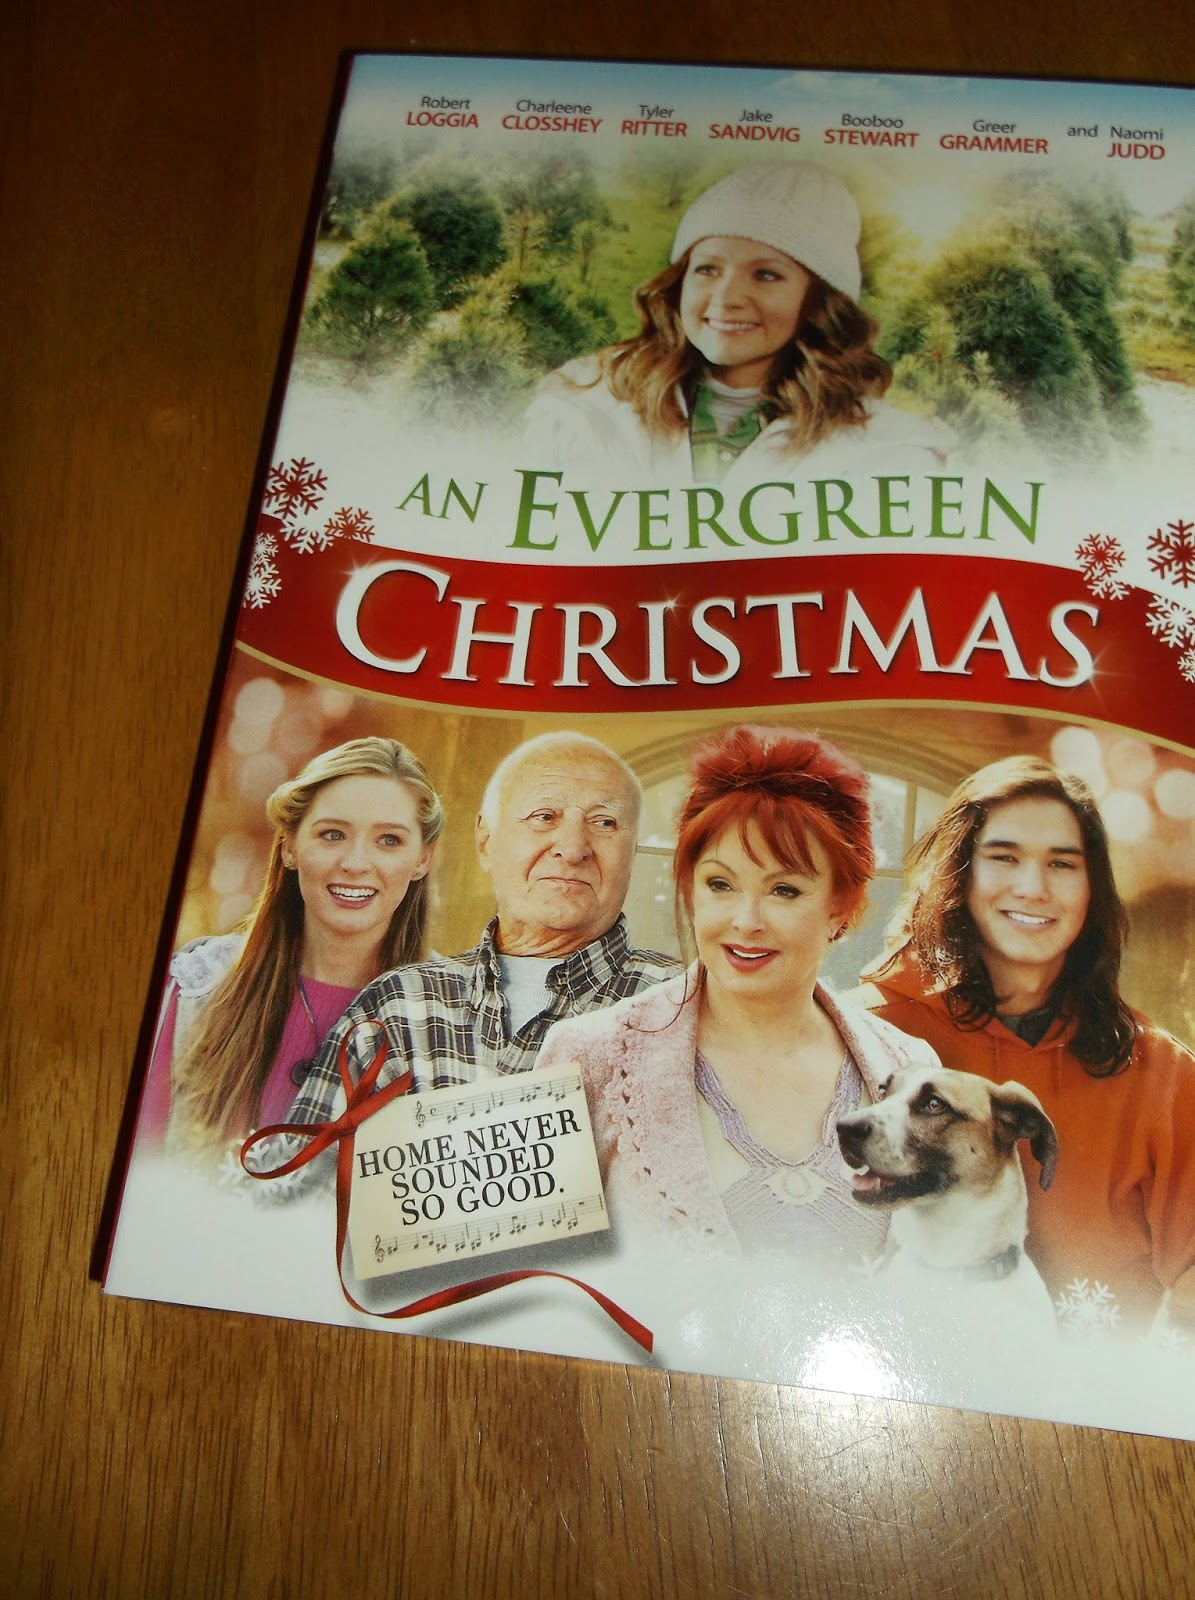 my opinion i love movies that are heartwarming and holiday themed this movie really was a great one which made me laugh and cry as i wish everyone in my - An Evergreen Christmas